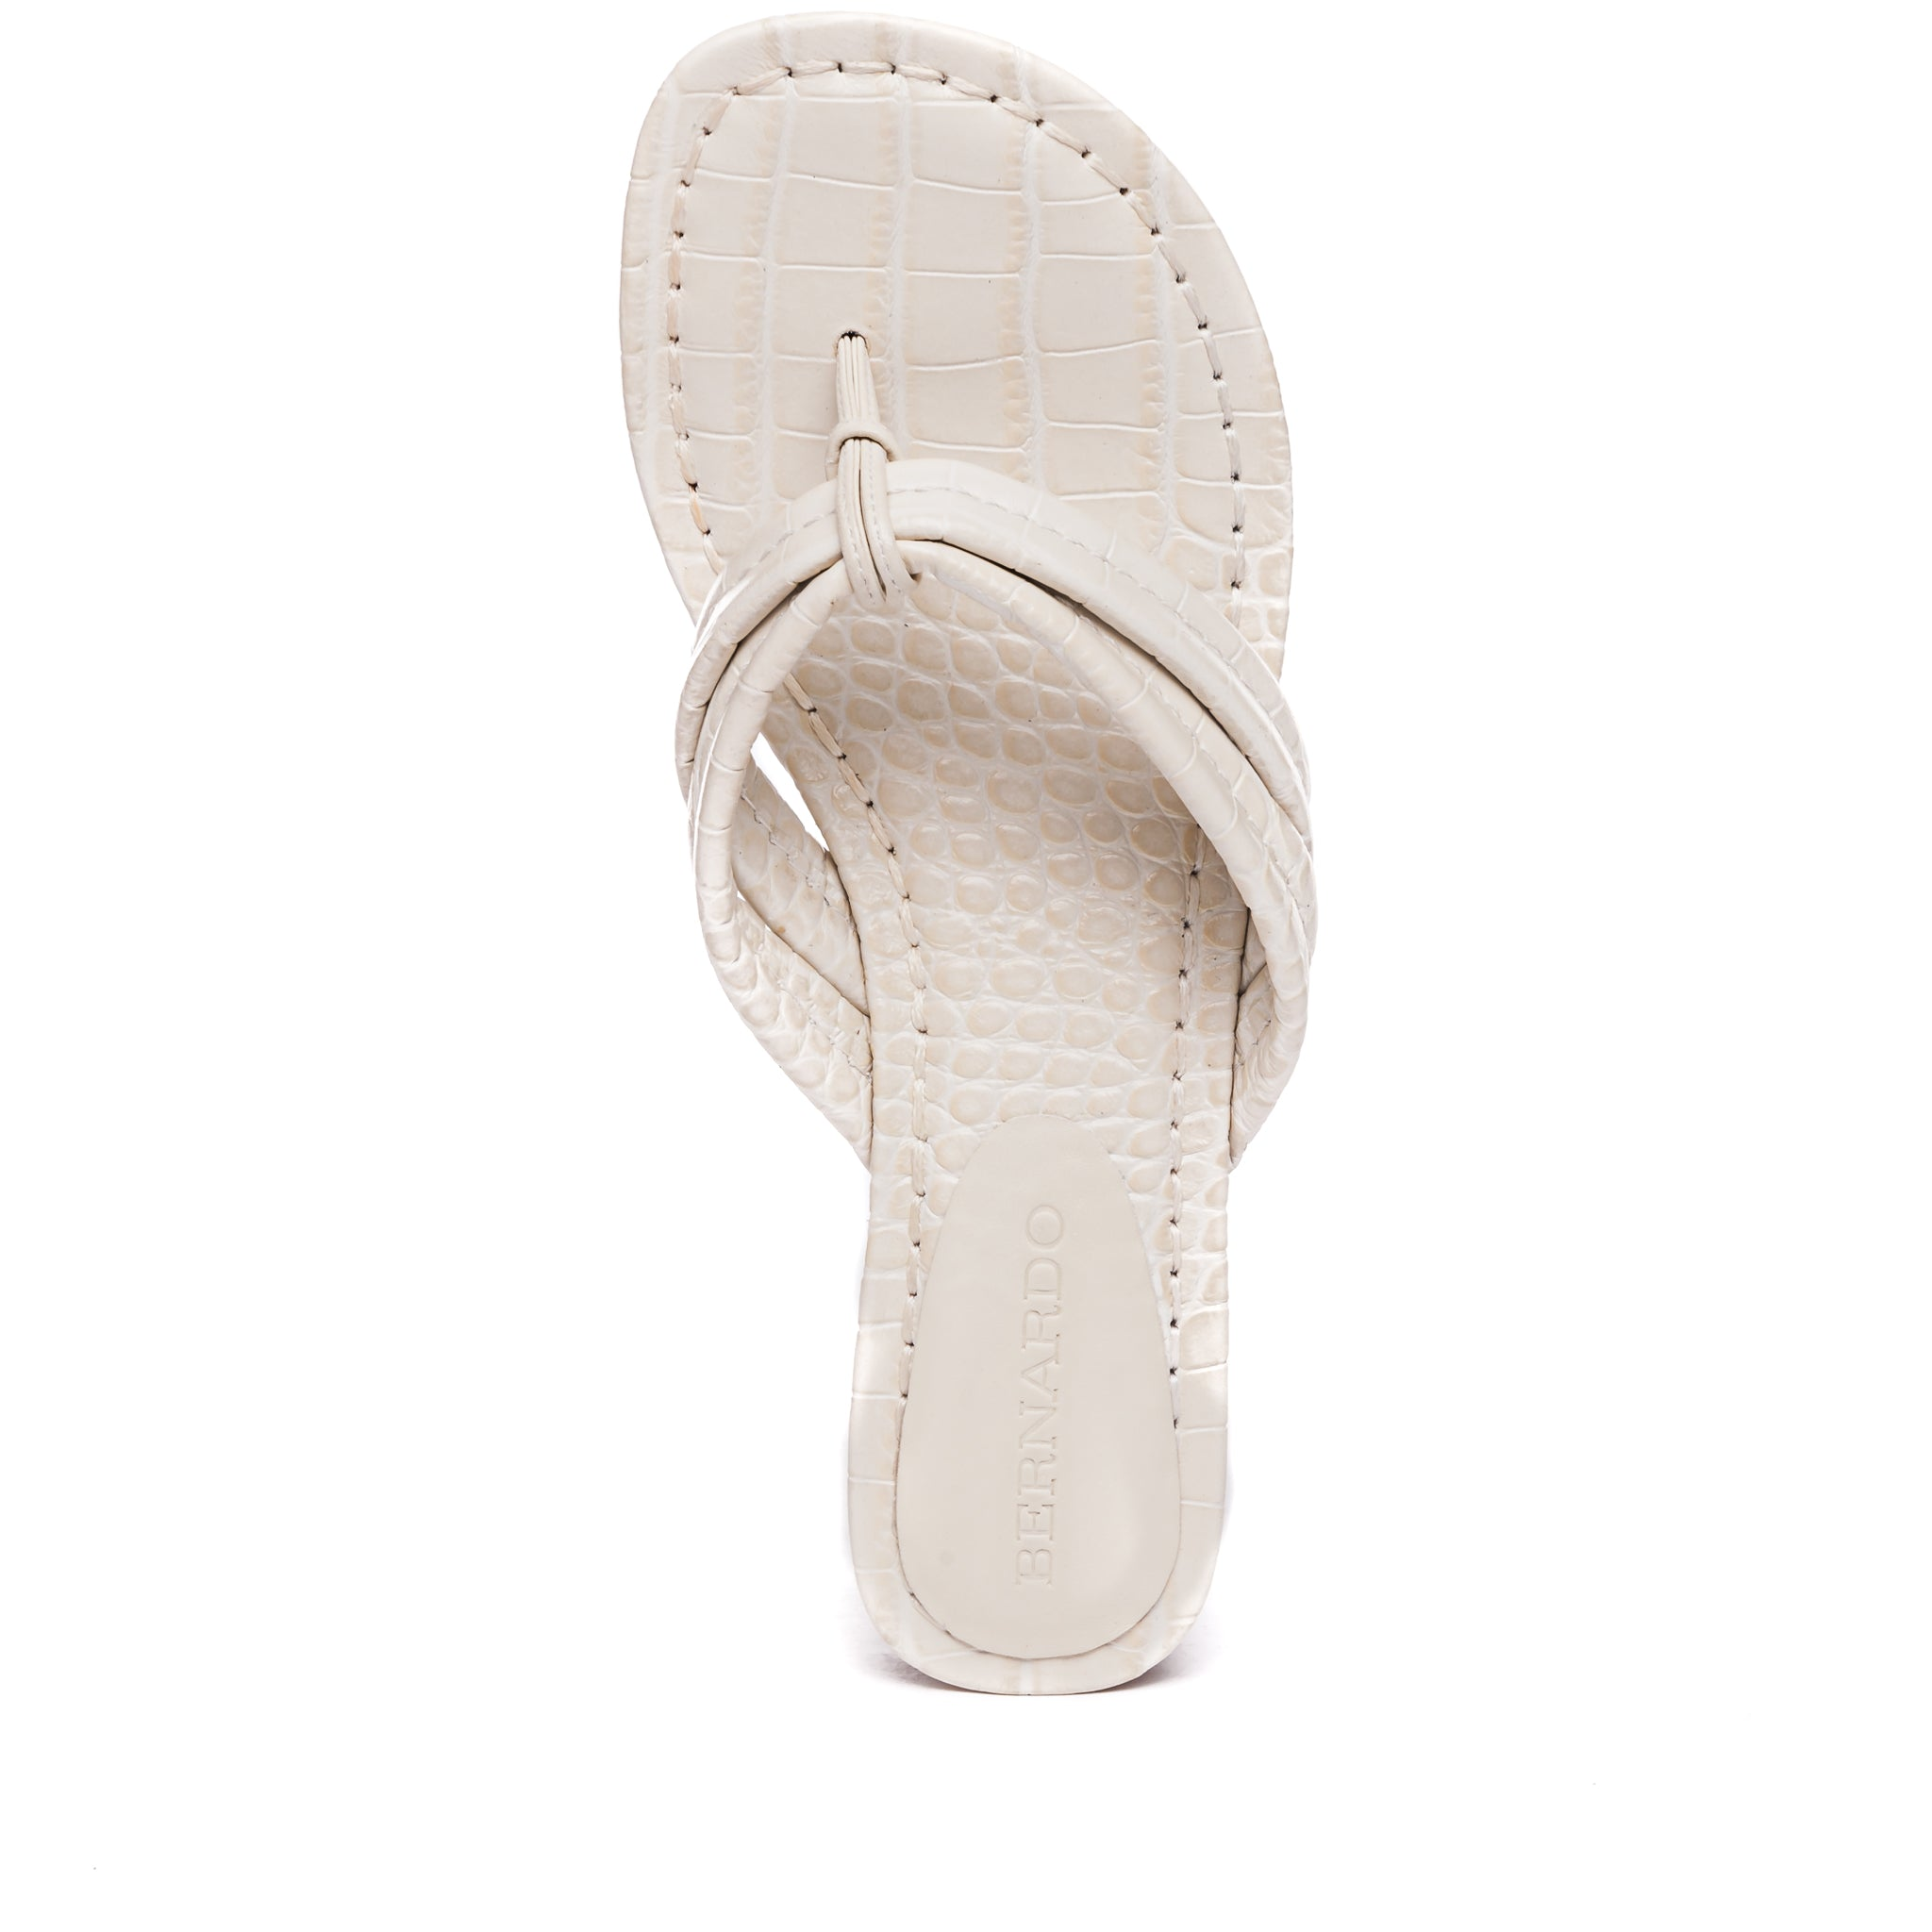 top view of Miami demi wedge sandal in eggshell leather